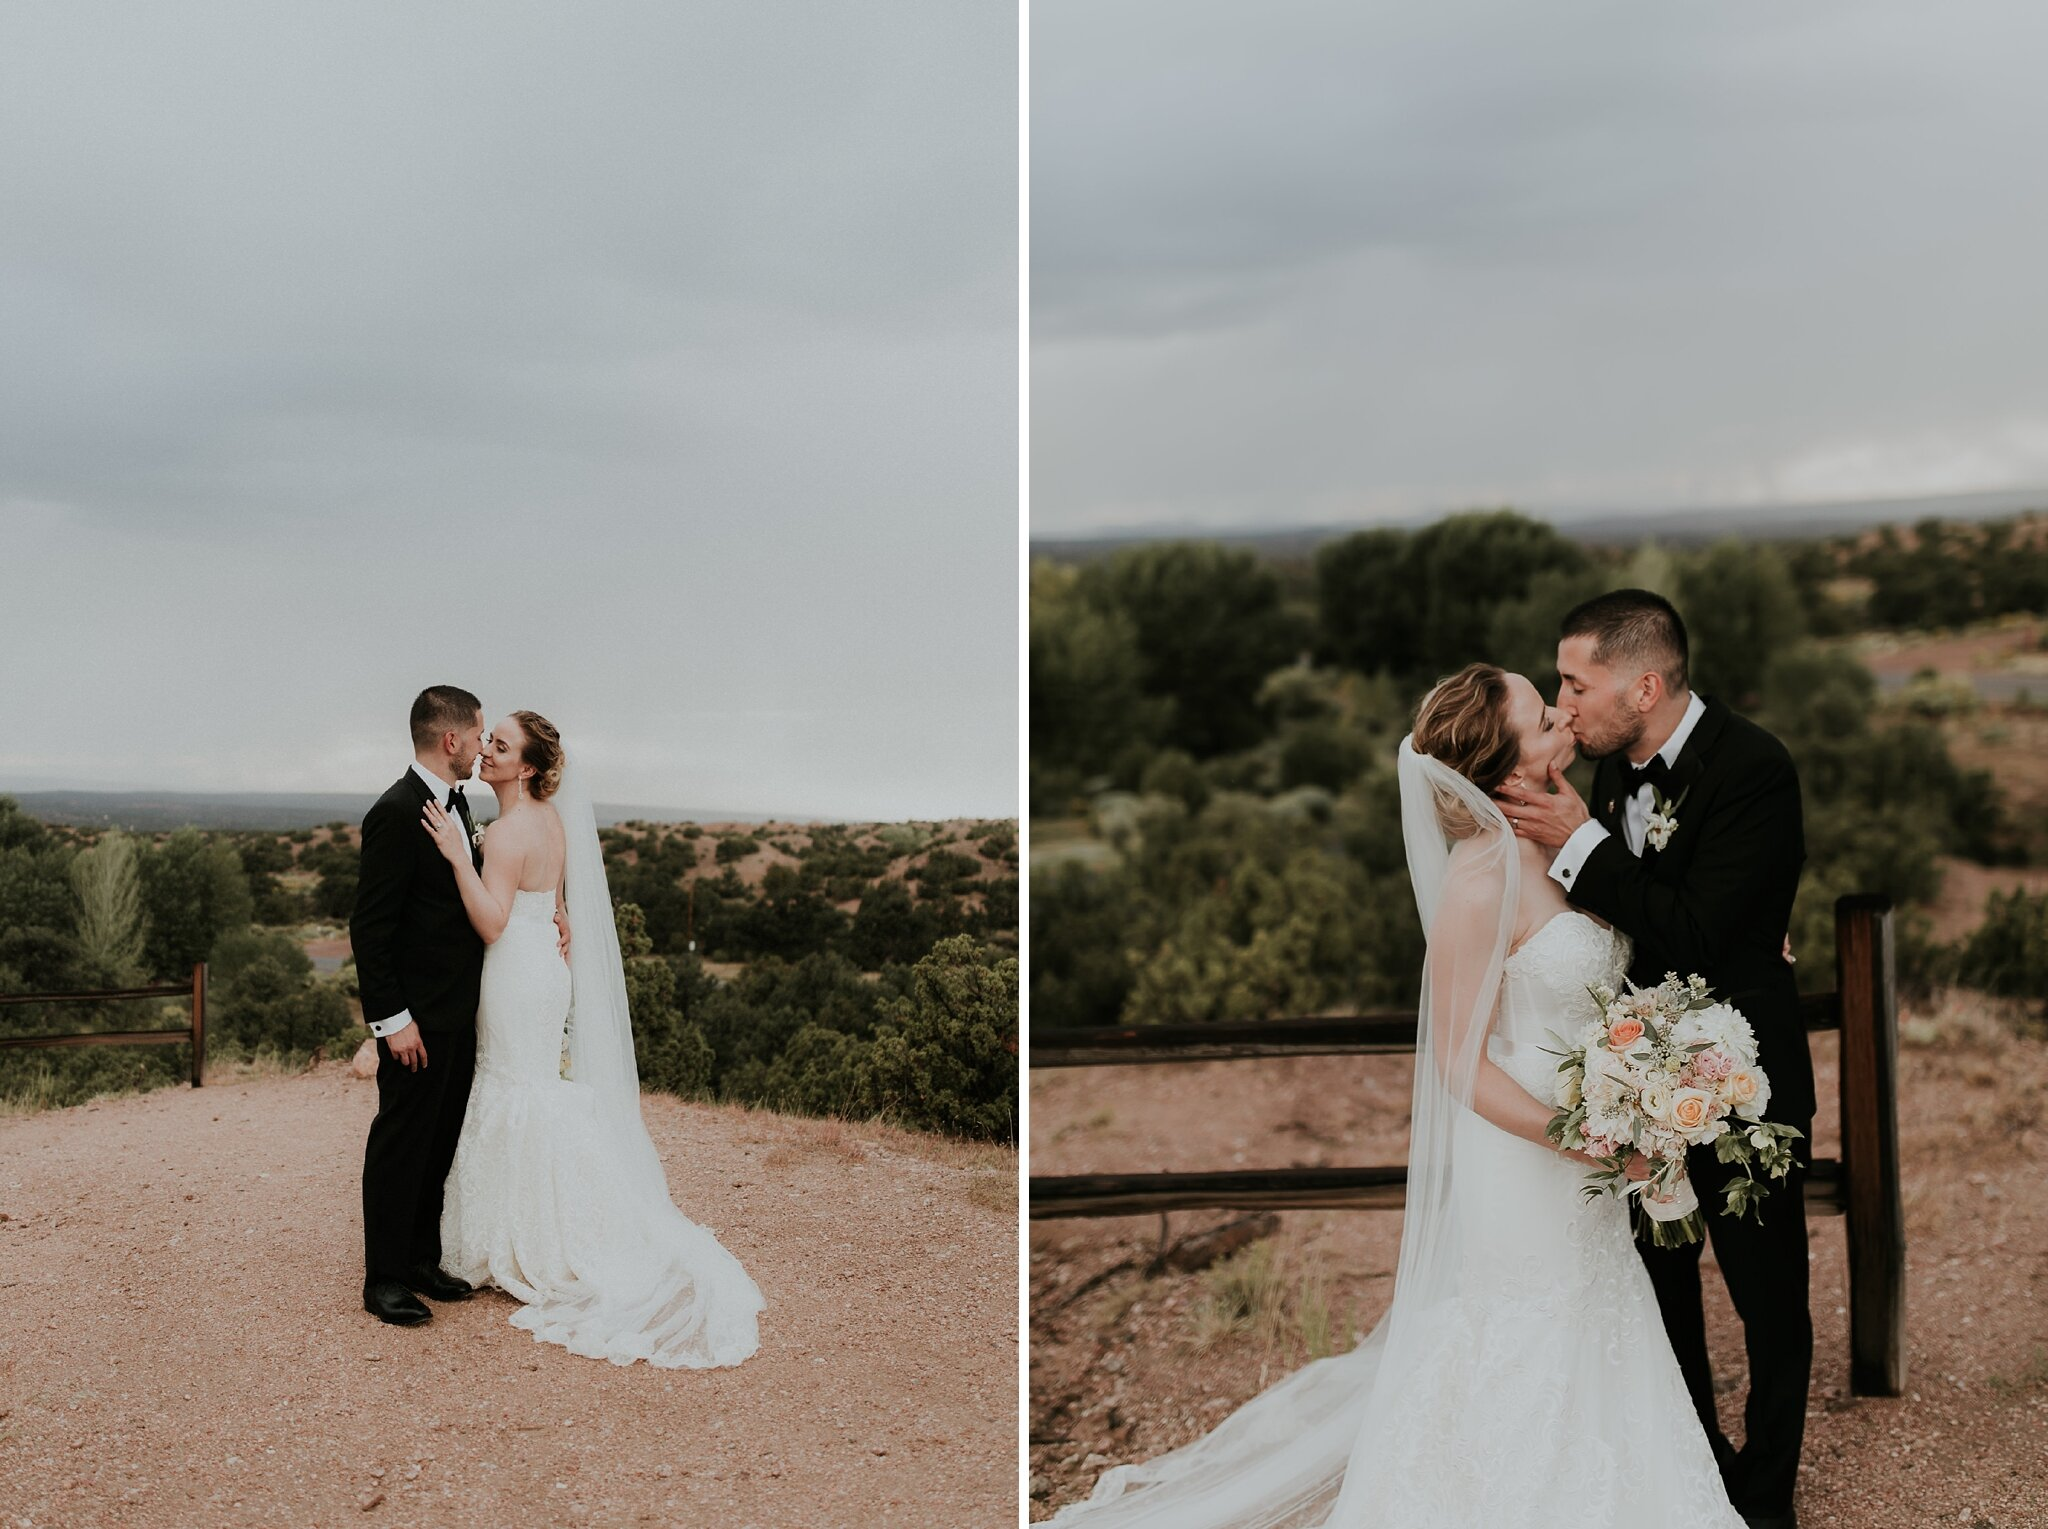 Alicia+lucia+photography+-+albuquerque+wedding+photographer+-+santa+fe+wedding+photography+-+new+mexico+wedding+photographer+-+new+mexico+wedding+-+wedding+venue+-+new+mexico+wedding+venue+-+four+seasons+wedding+-+four+seasons+santa+fe_0083.jpg